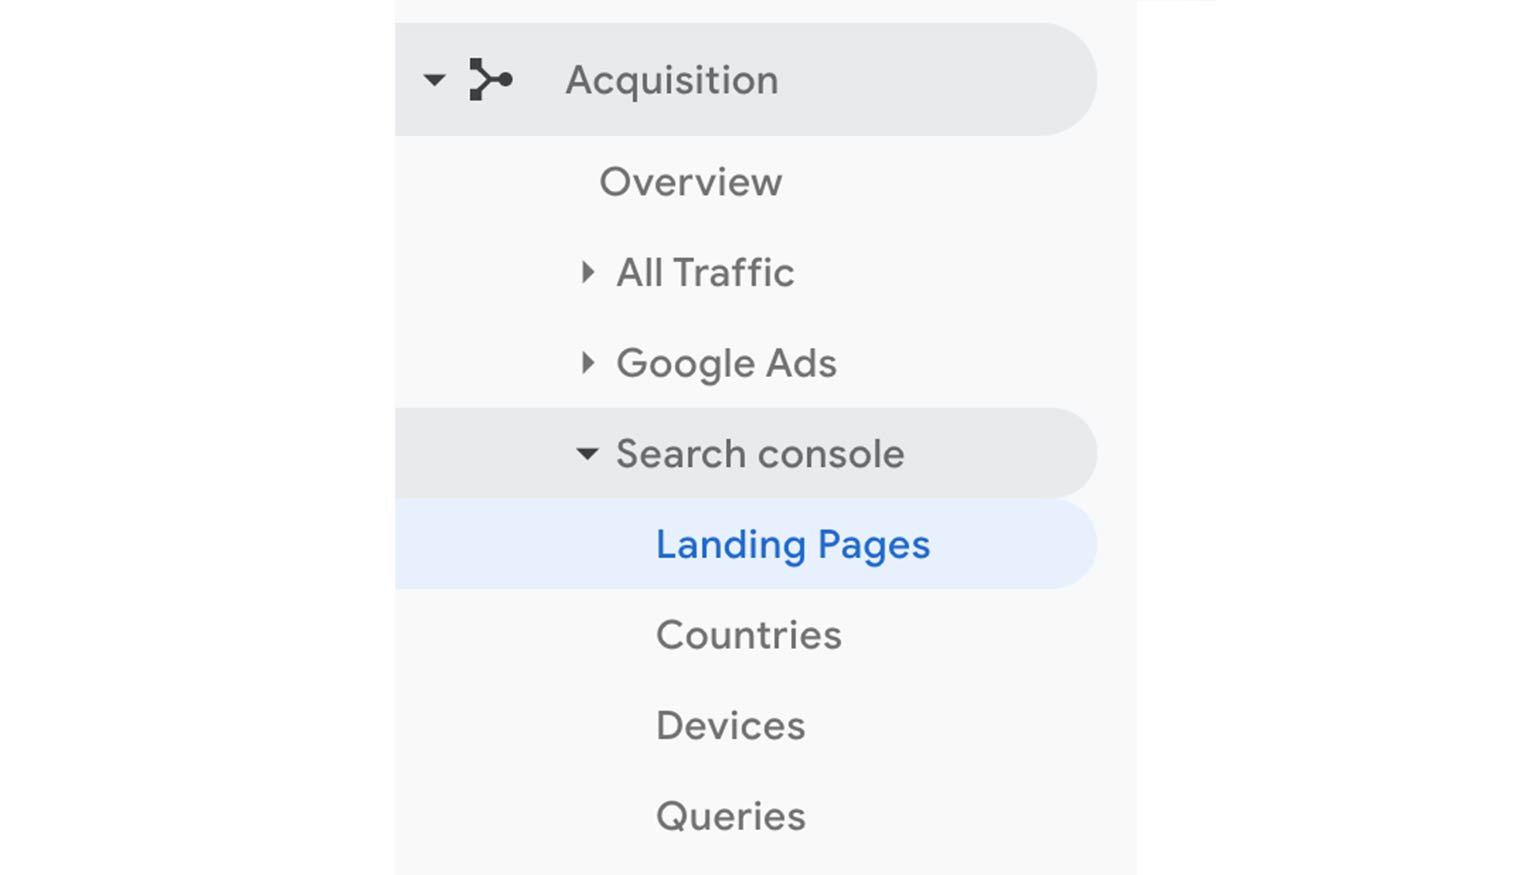 Connect your Google Search Console and Google Analytics accounts to be able to view organic search data from within Analytics as well.